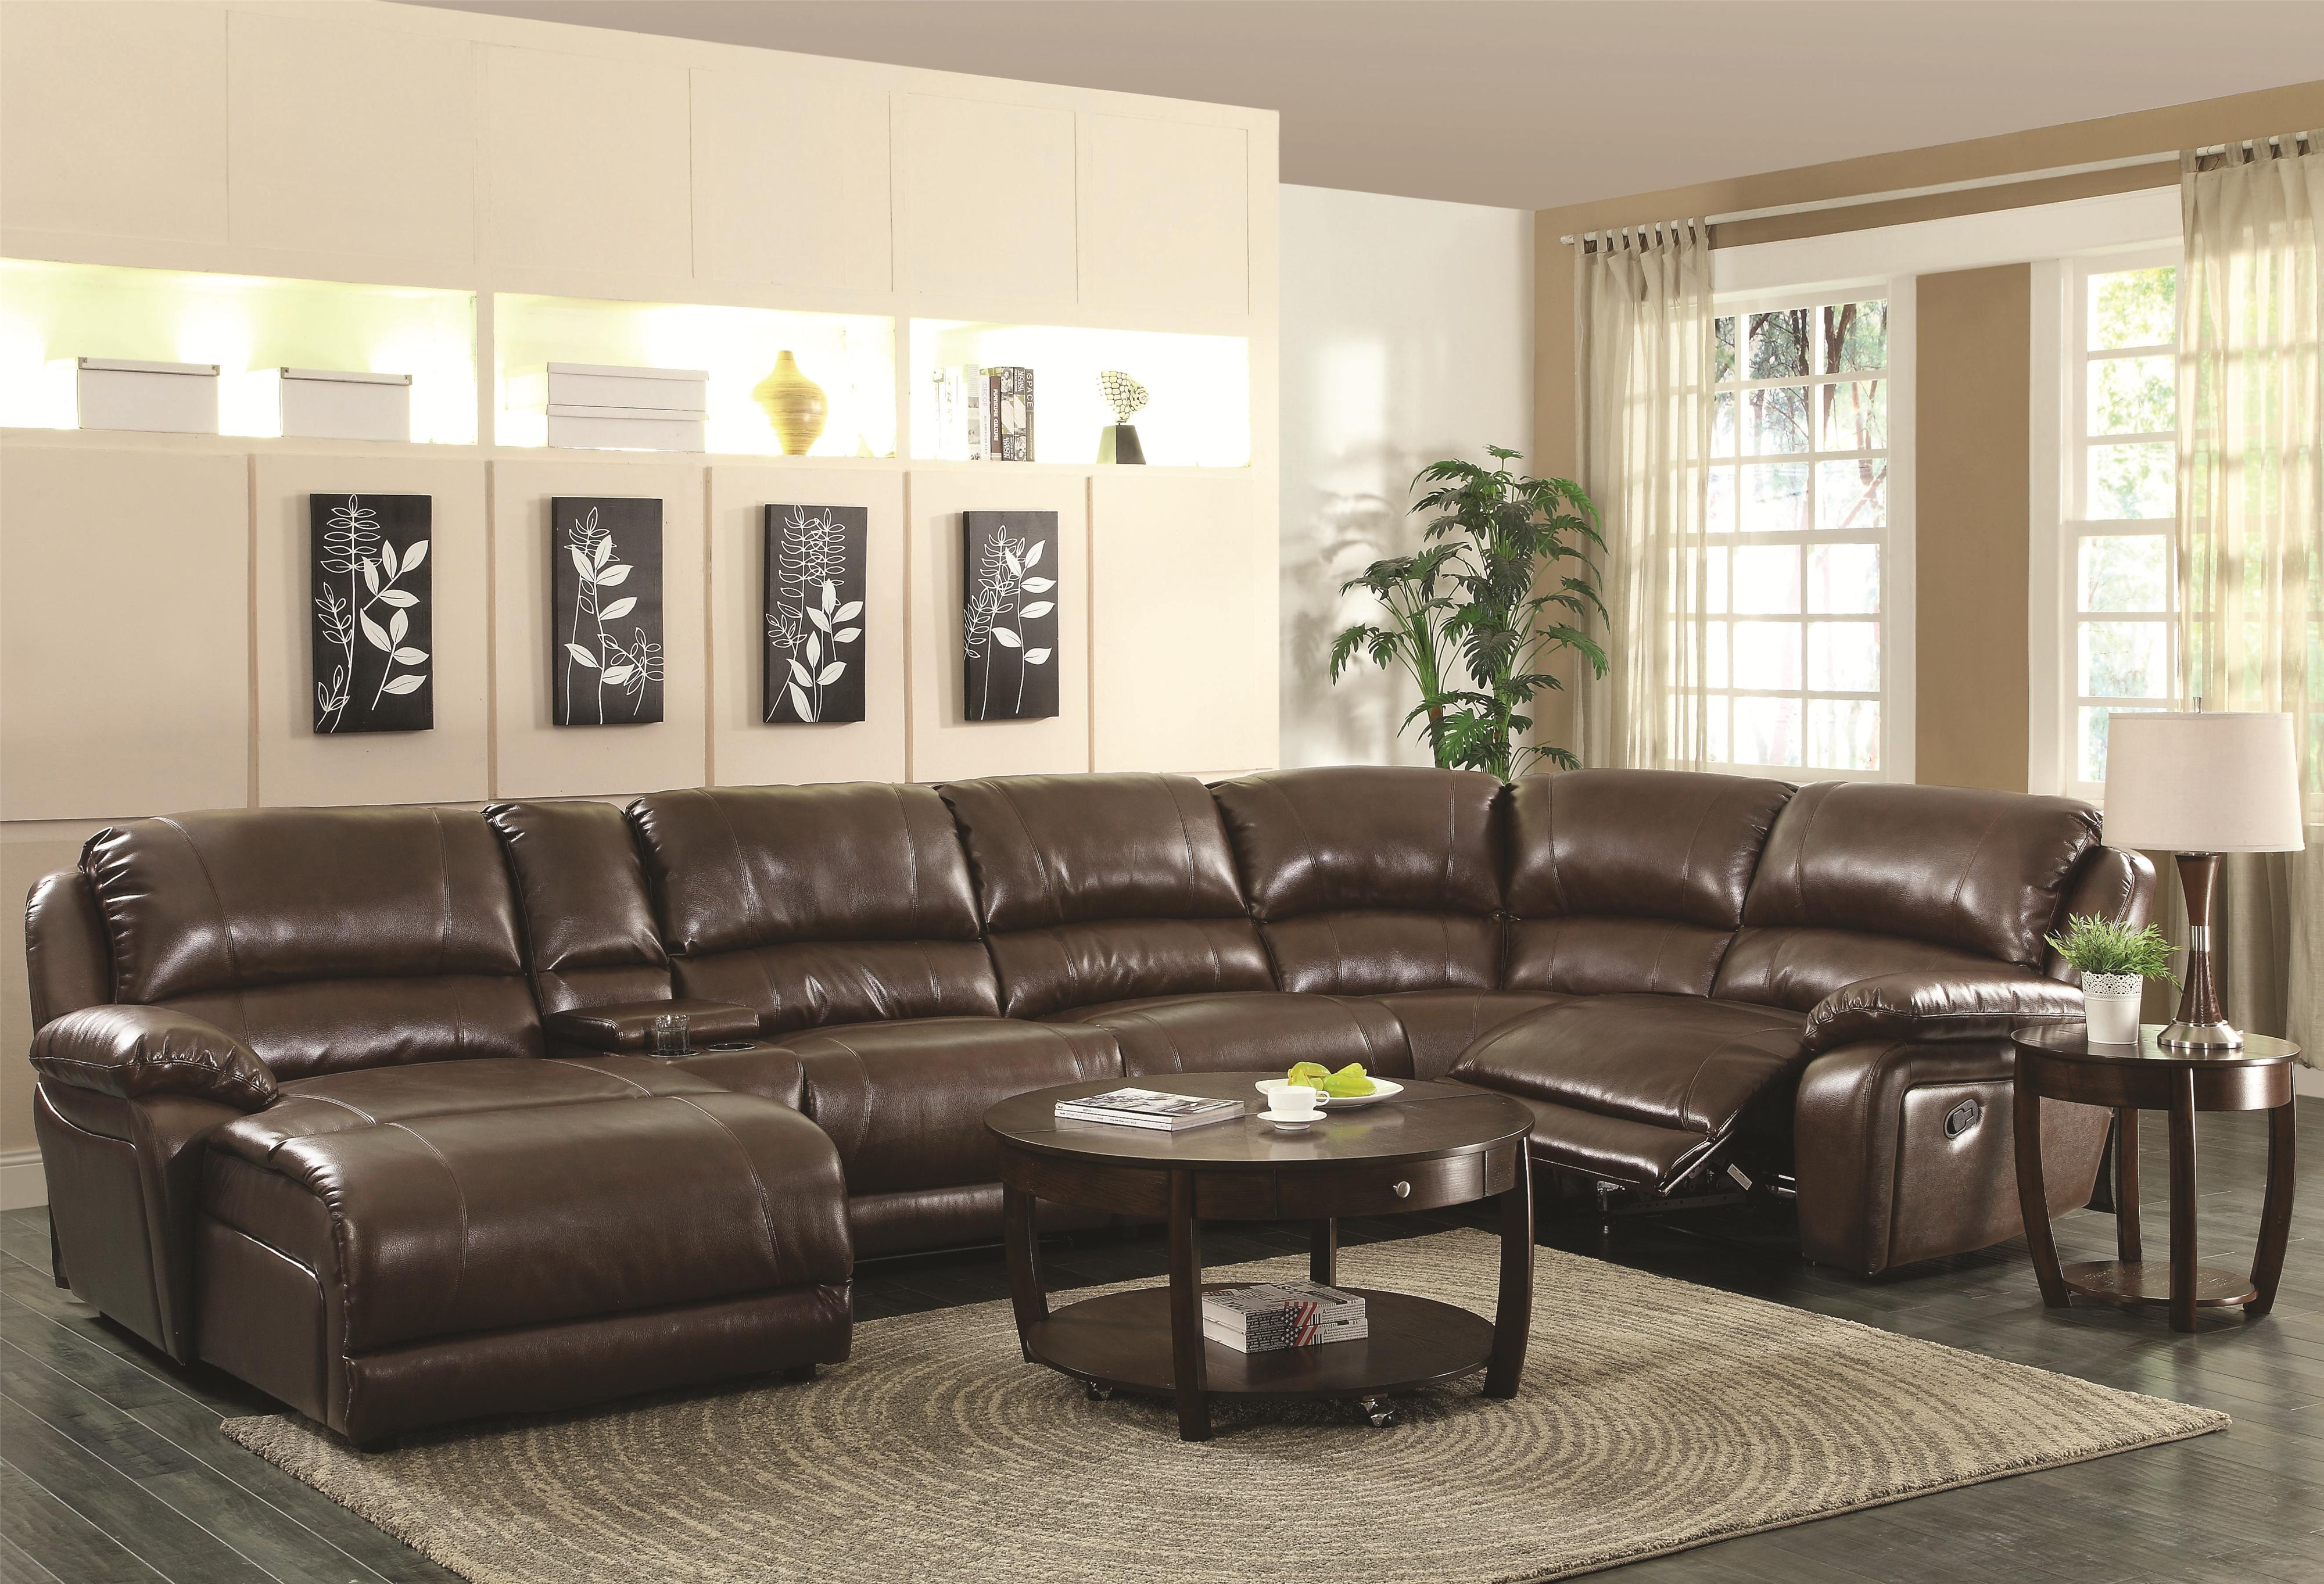 Big Brown Leather Sectional Sofas With Recliners And Chaise With Round  Wooden Coffee Table And Cool